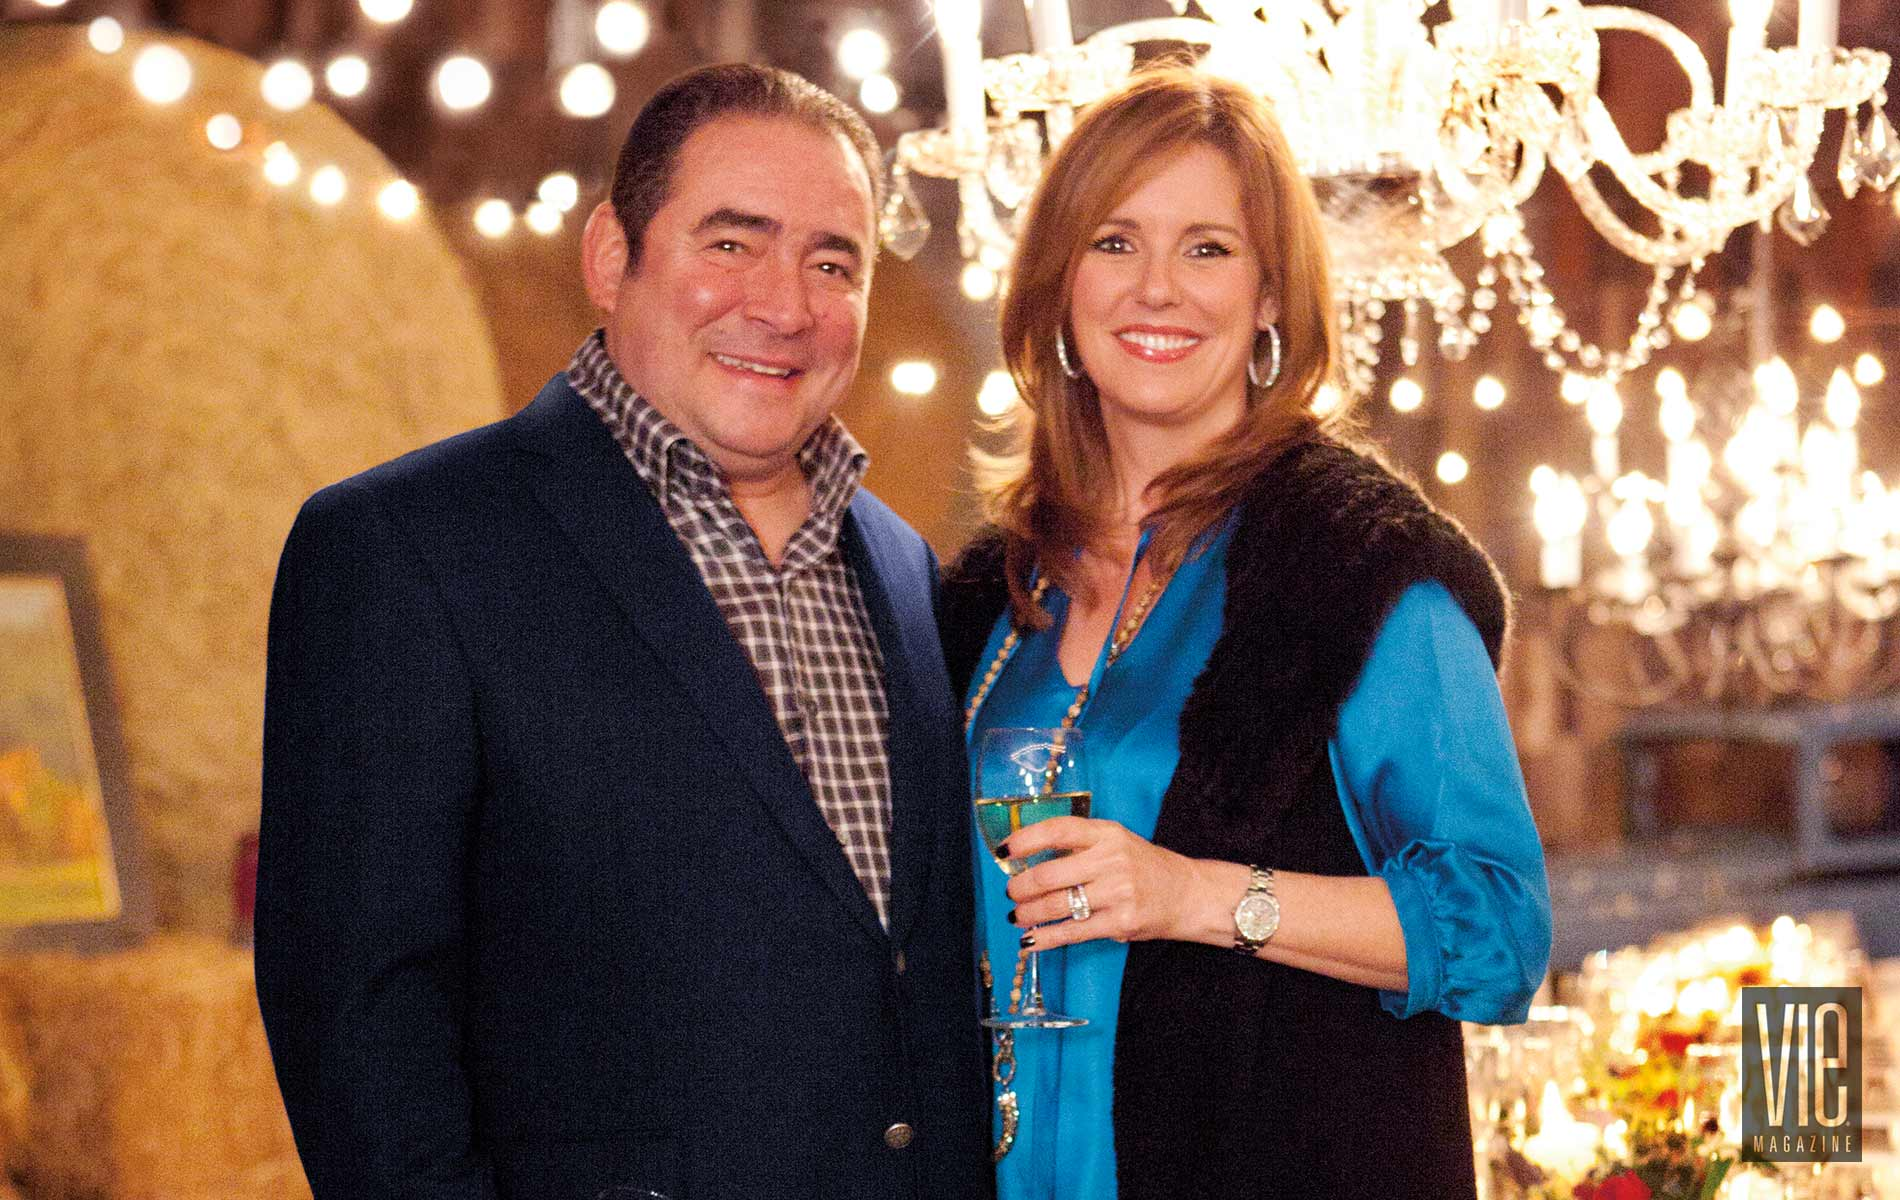 Chef Emeril Lagasse and wife Alden at event